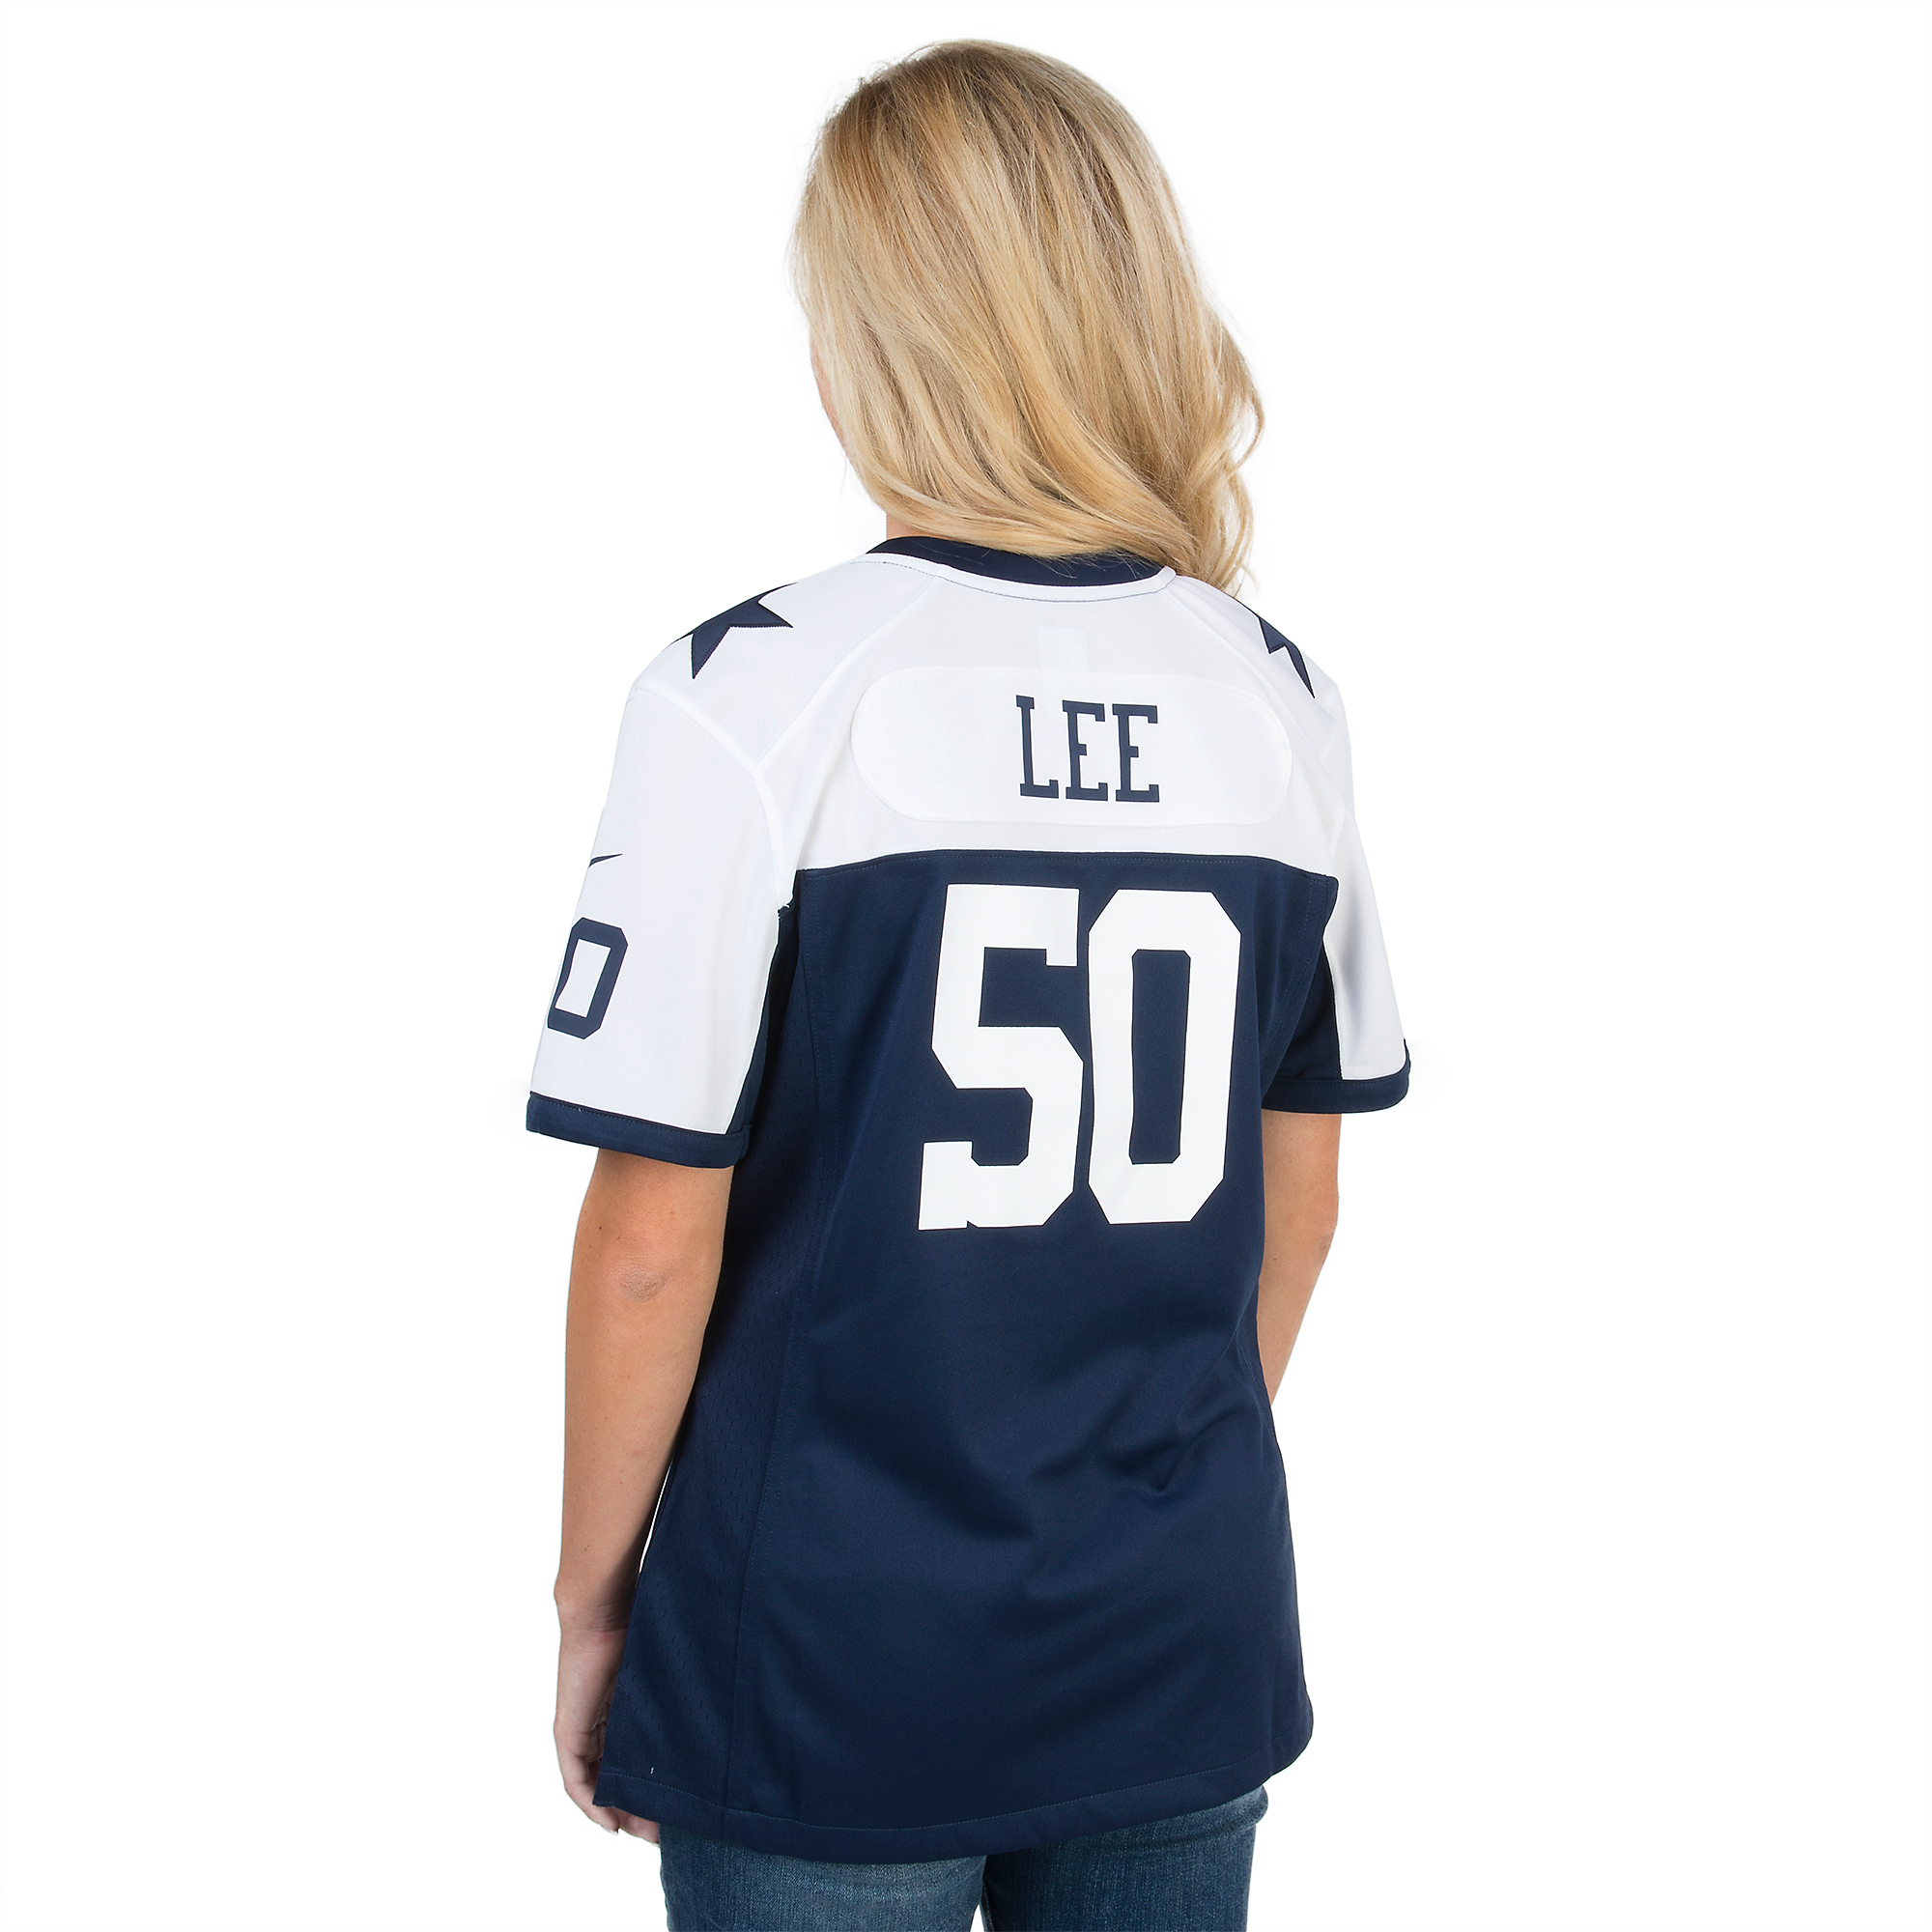 online retailer a6b62 12b59 Dallas Cowboys Womens Sean Lee #50 Nike Game Throwback ...